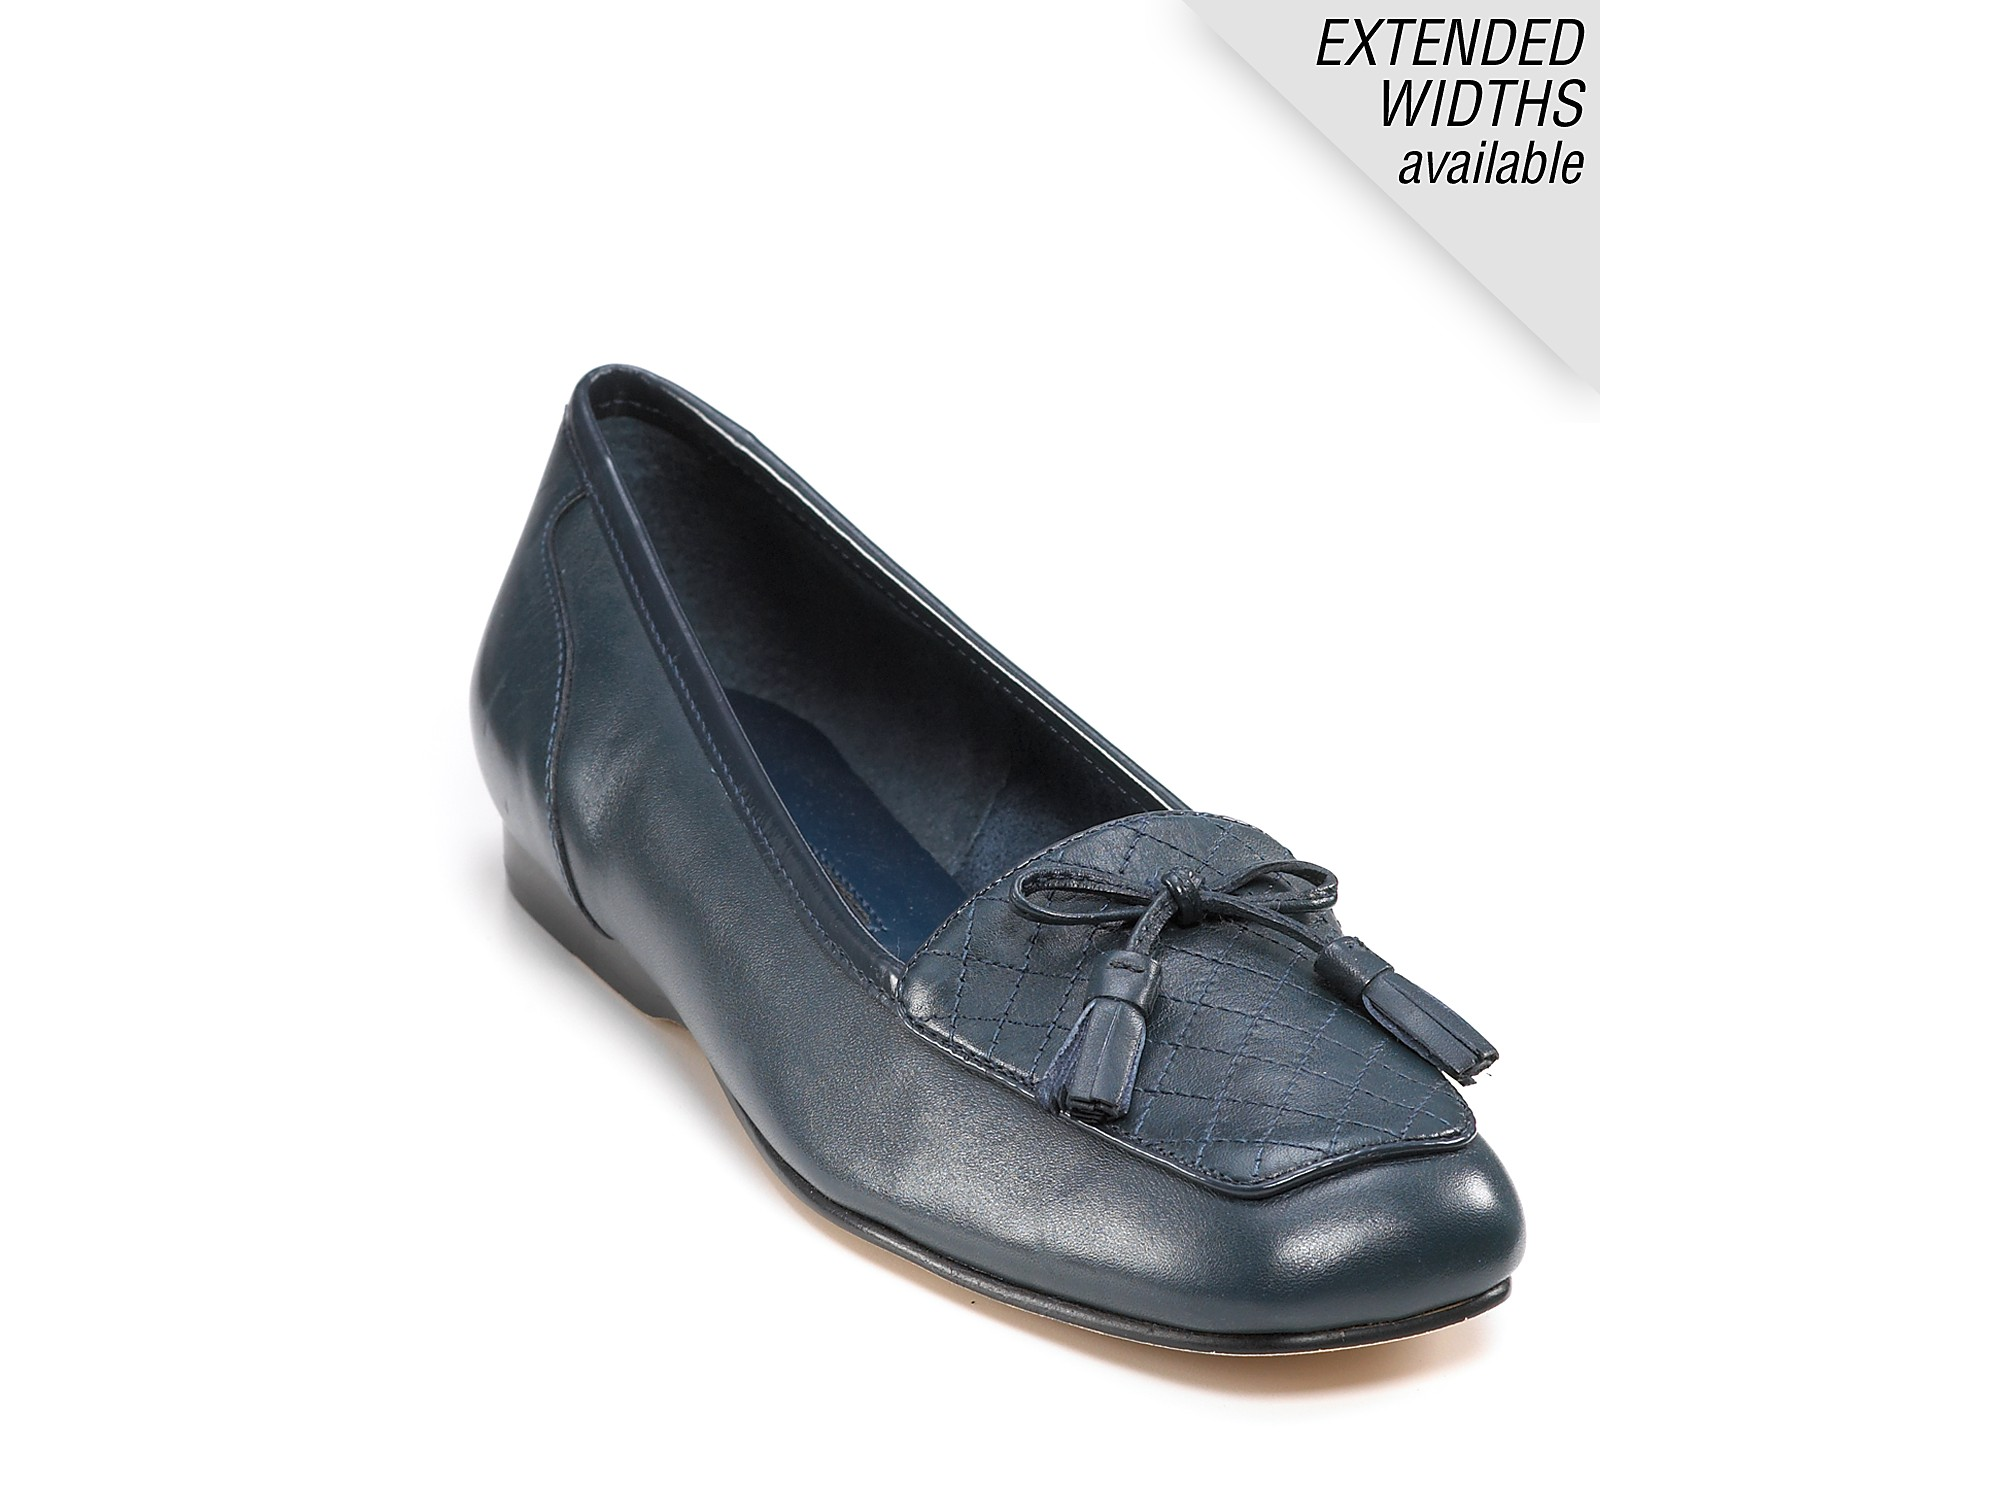 enzo angiolini lizzia navy leather flats in blue navy